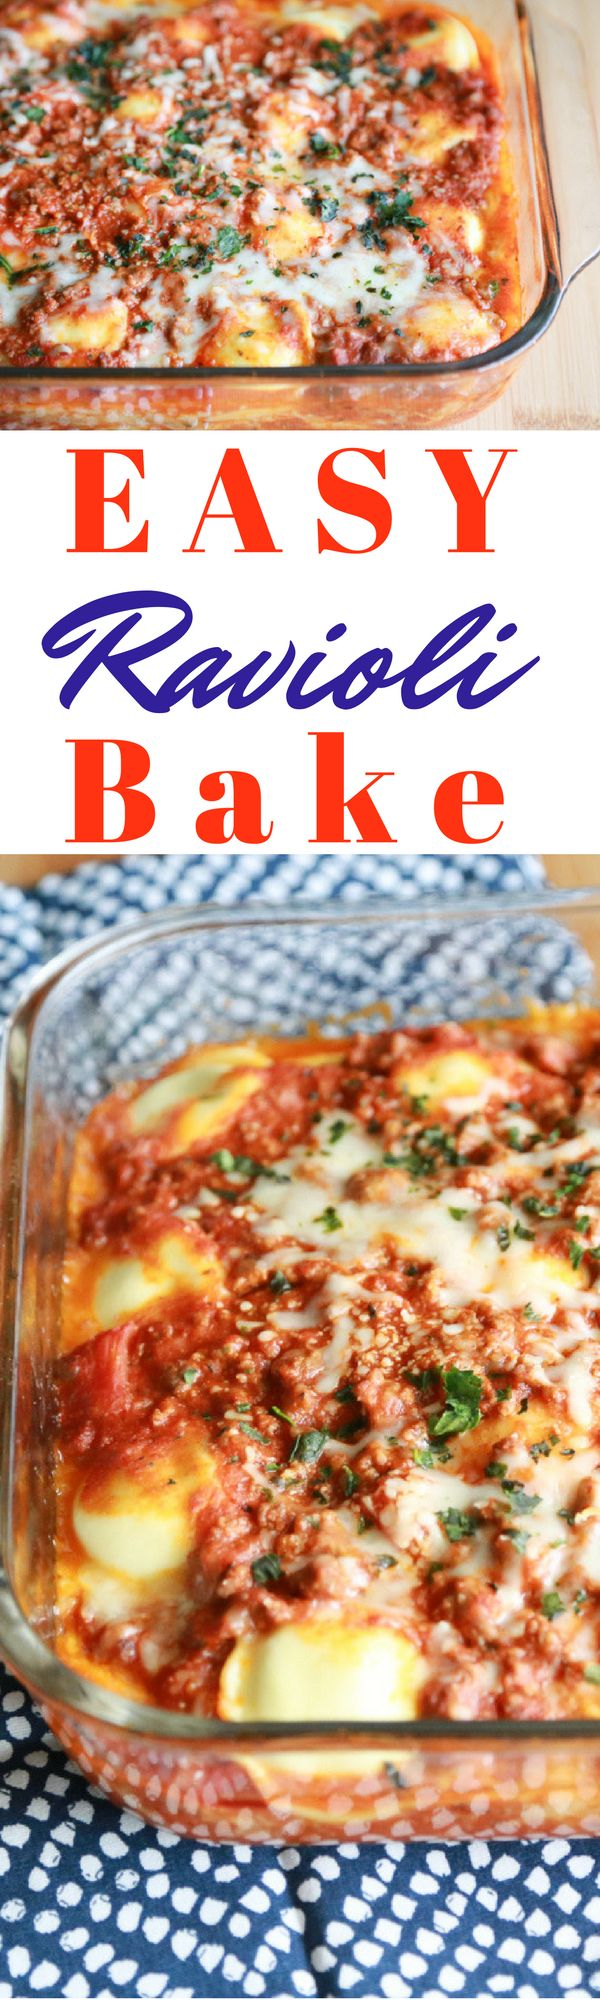 Spend less time in the kitchen and more time with your family with this Easy Ravioli Bake recipe.